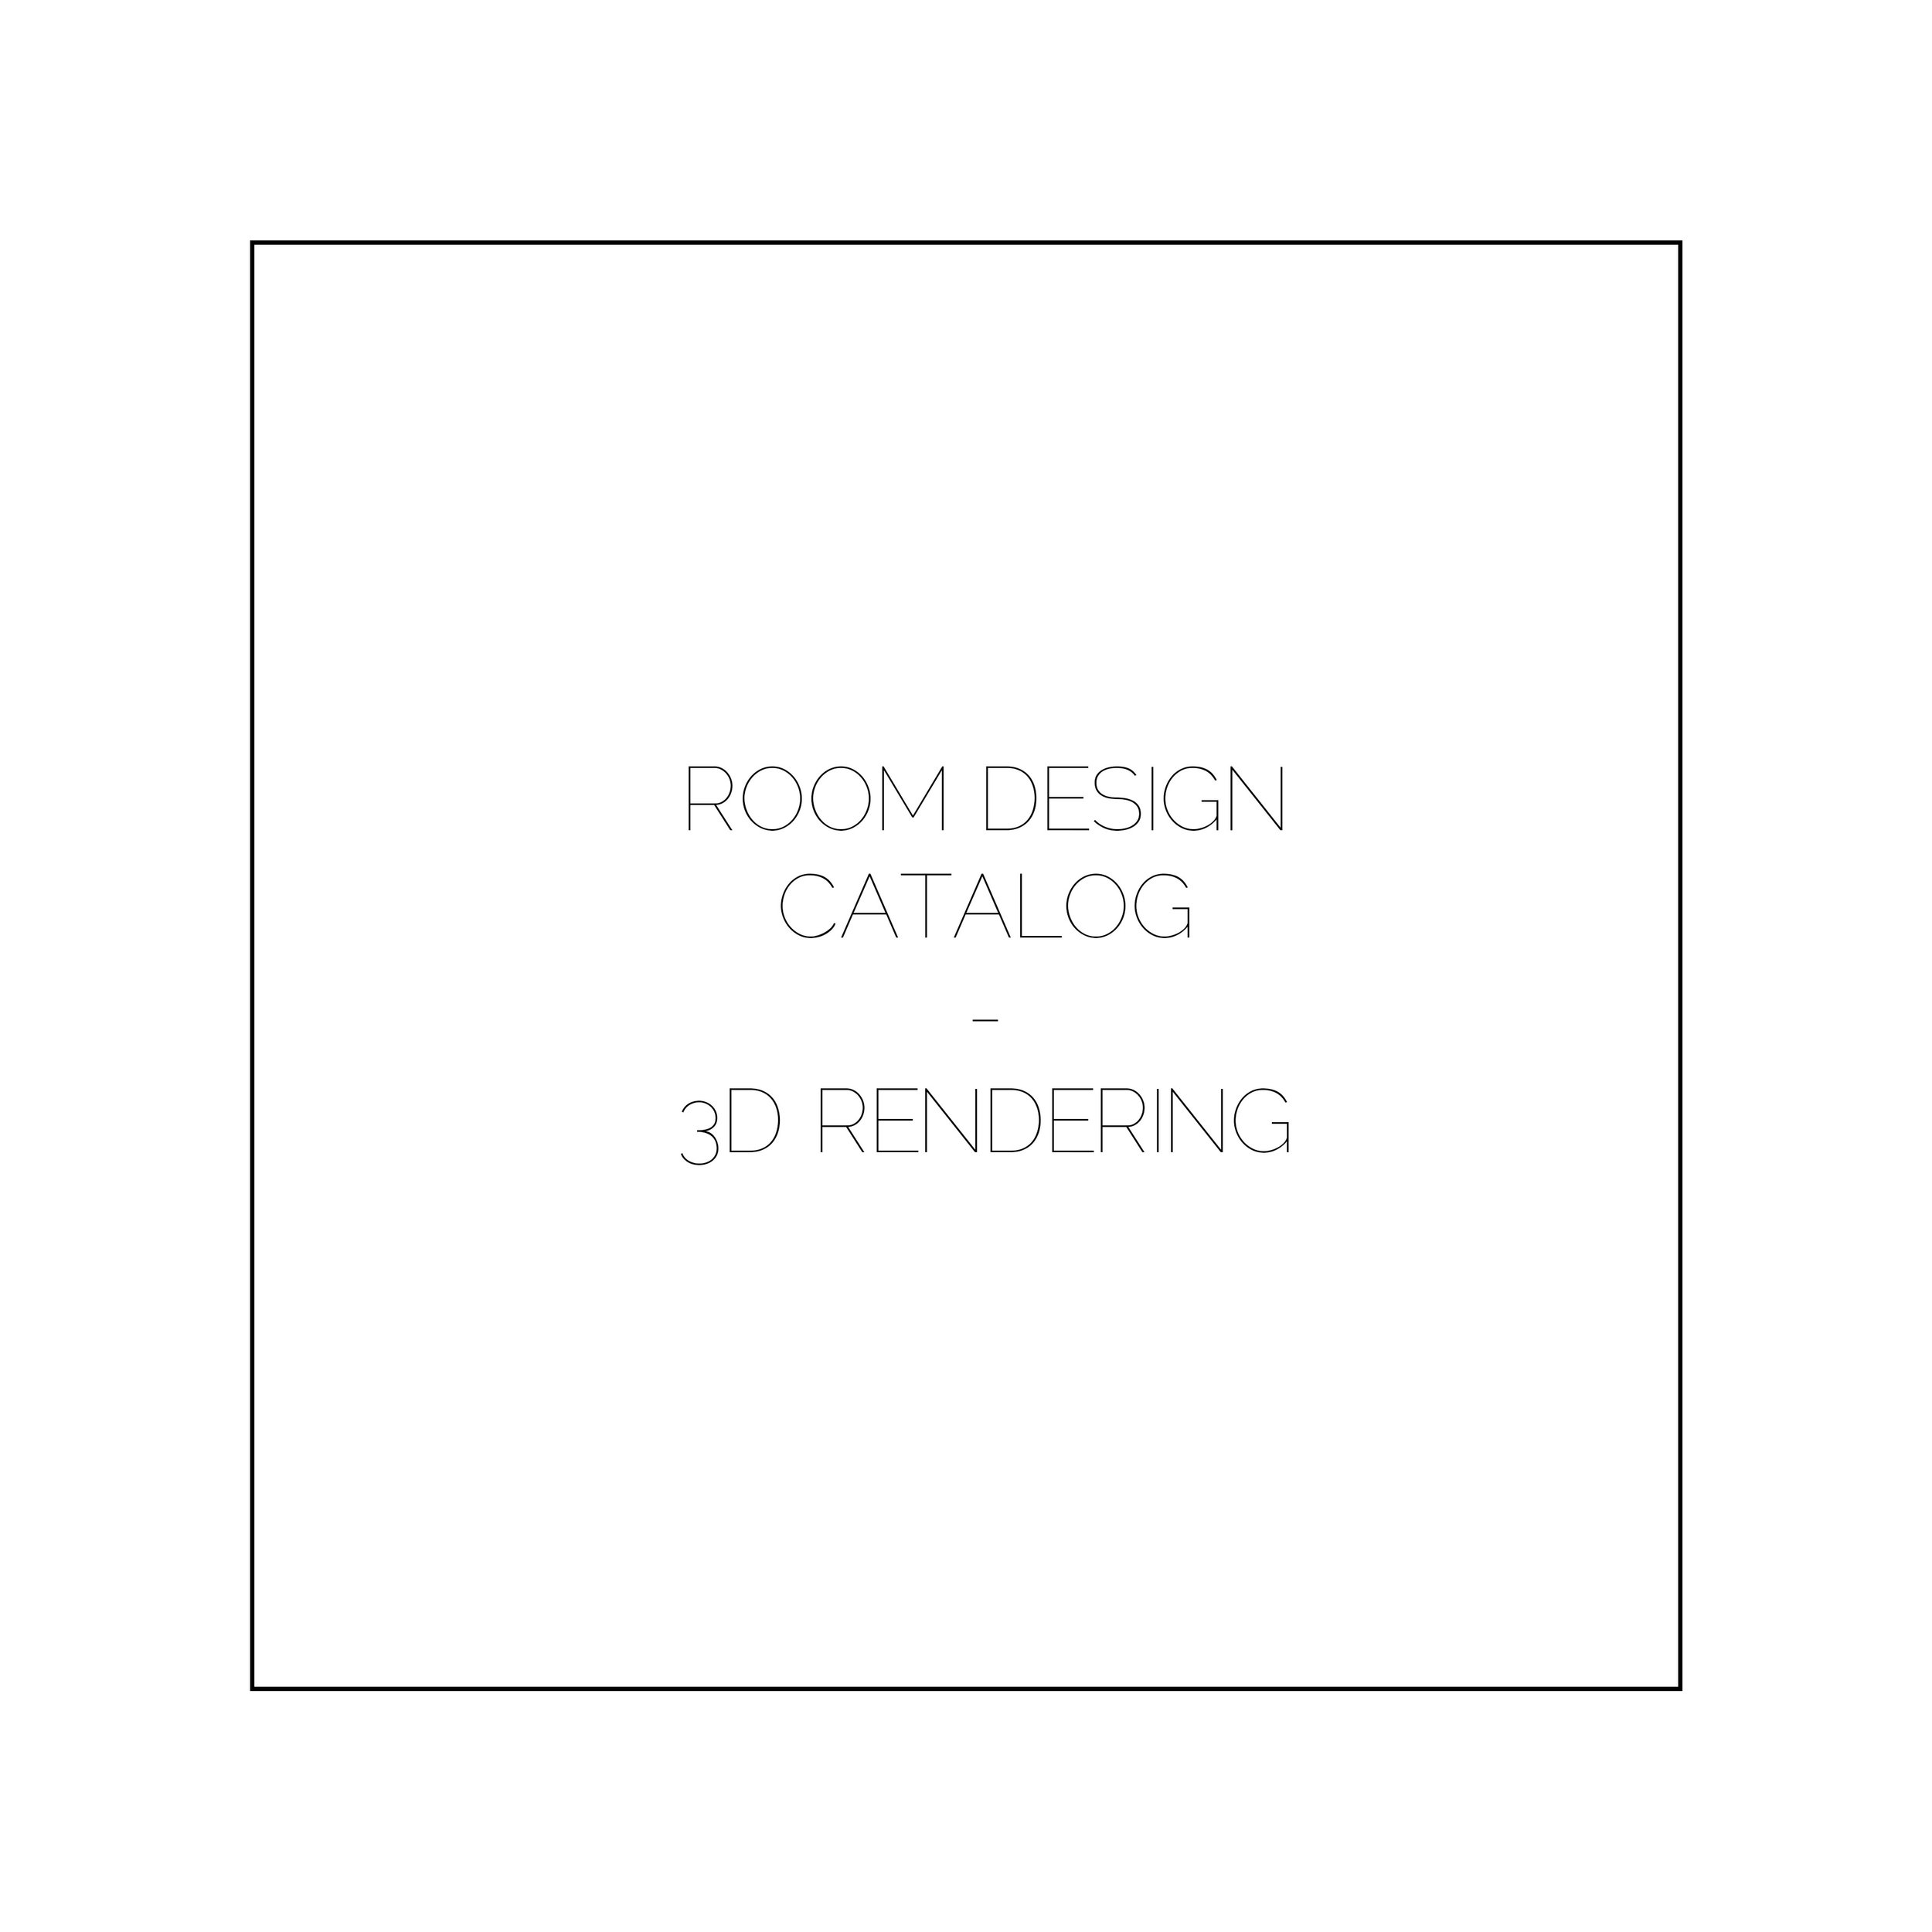 ROOM DESIGN Cover.jpg